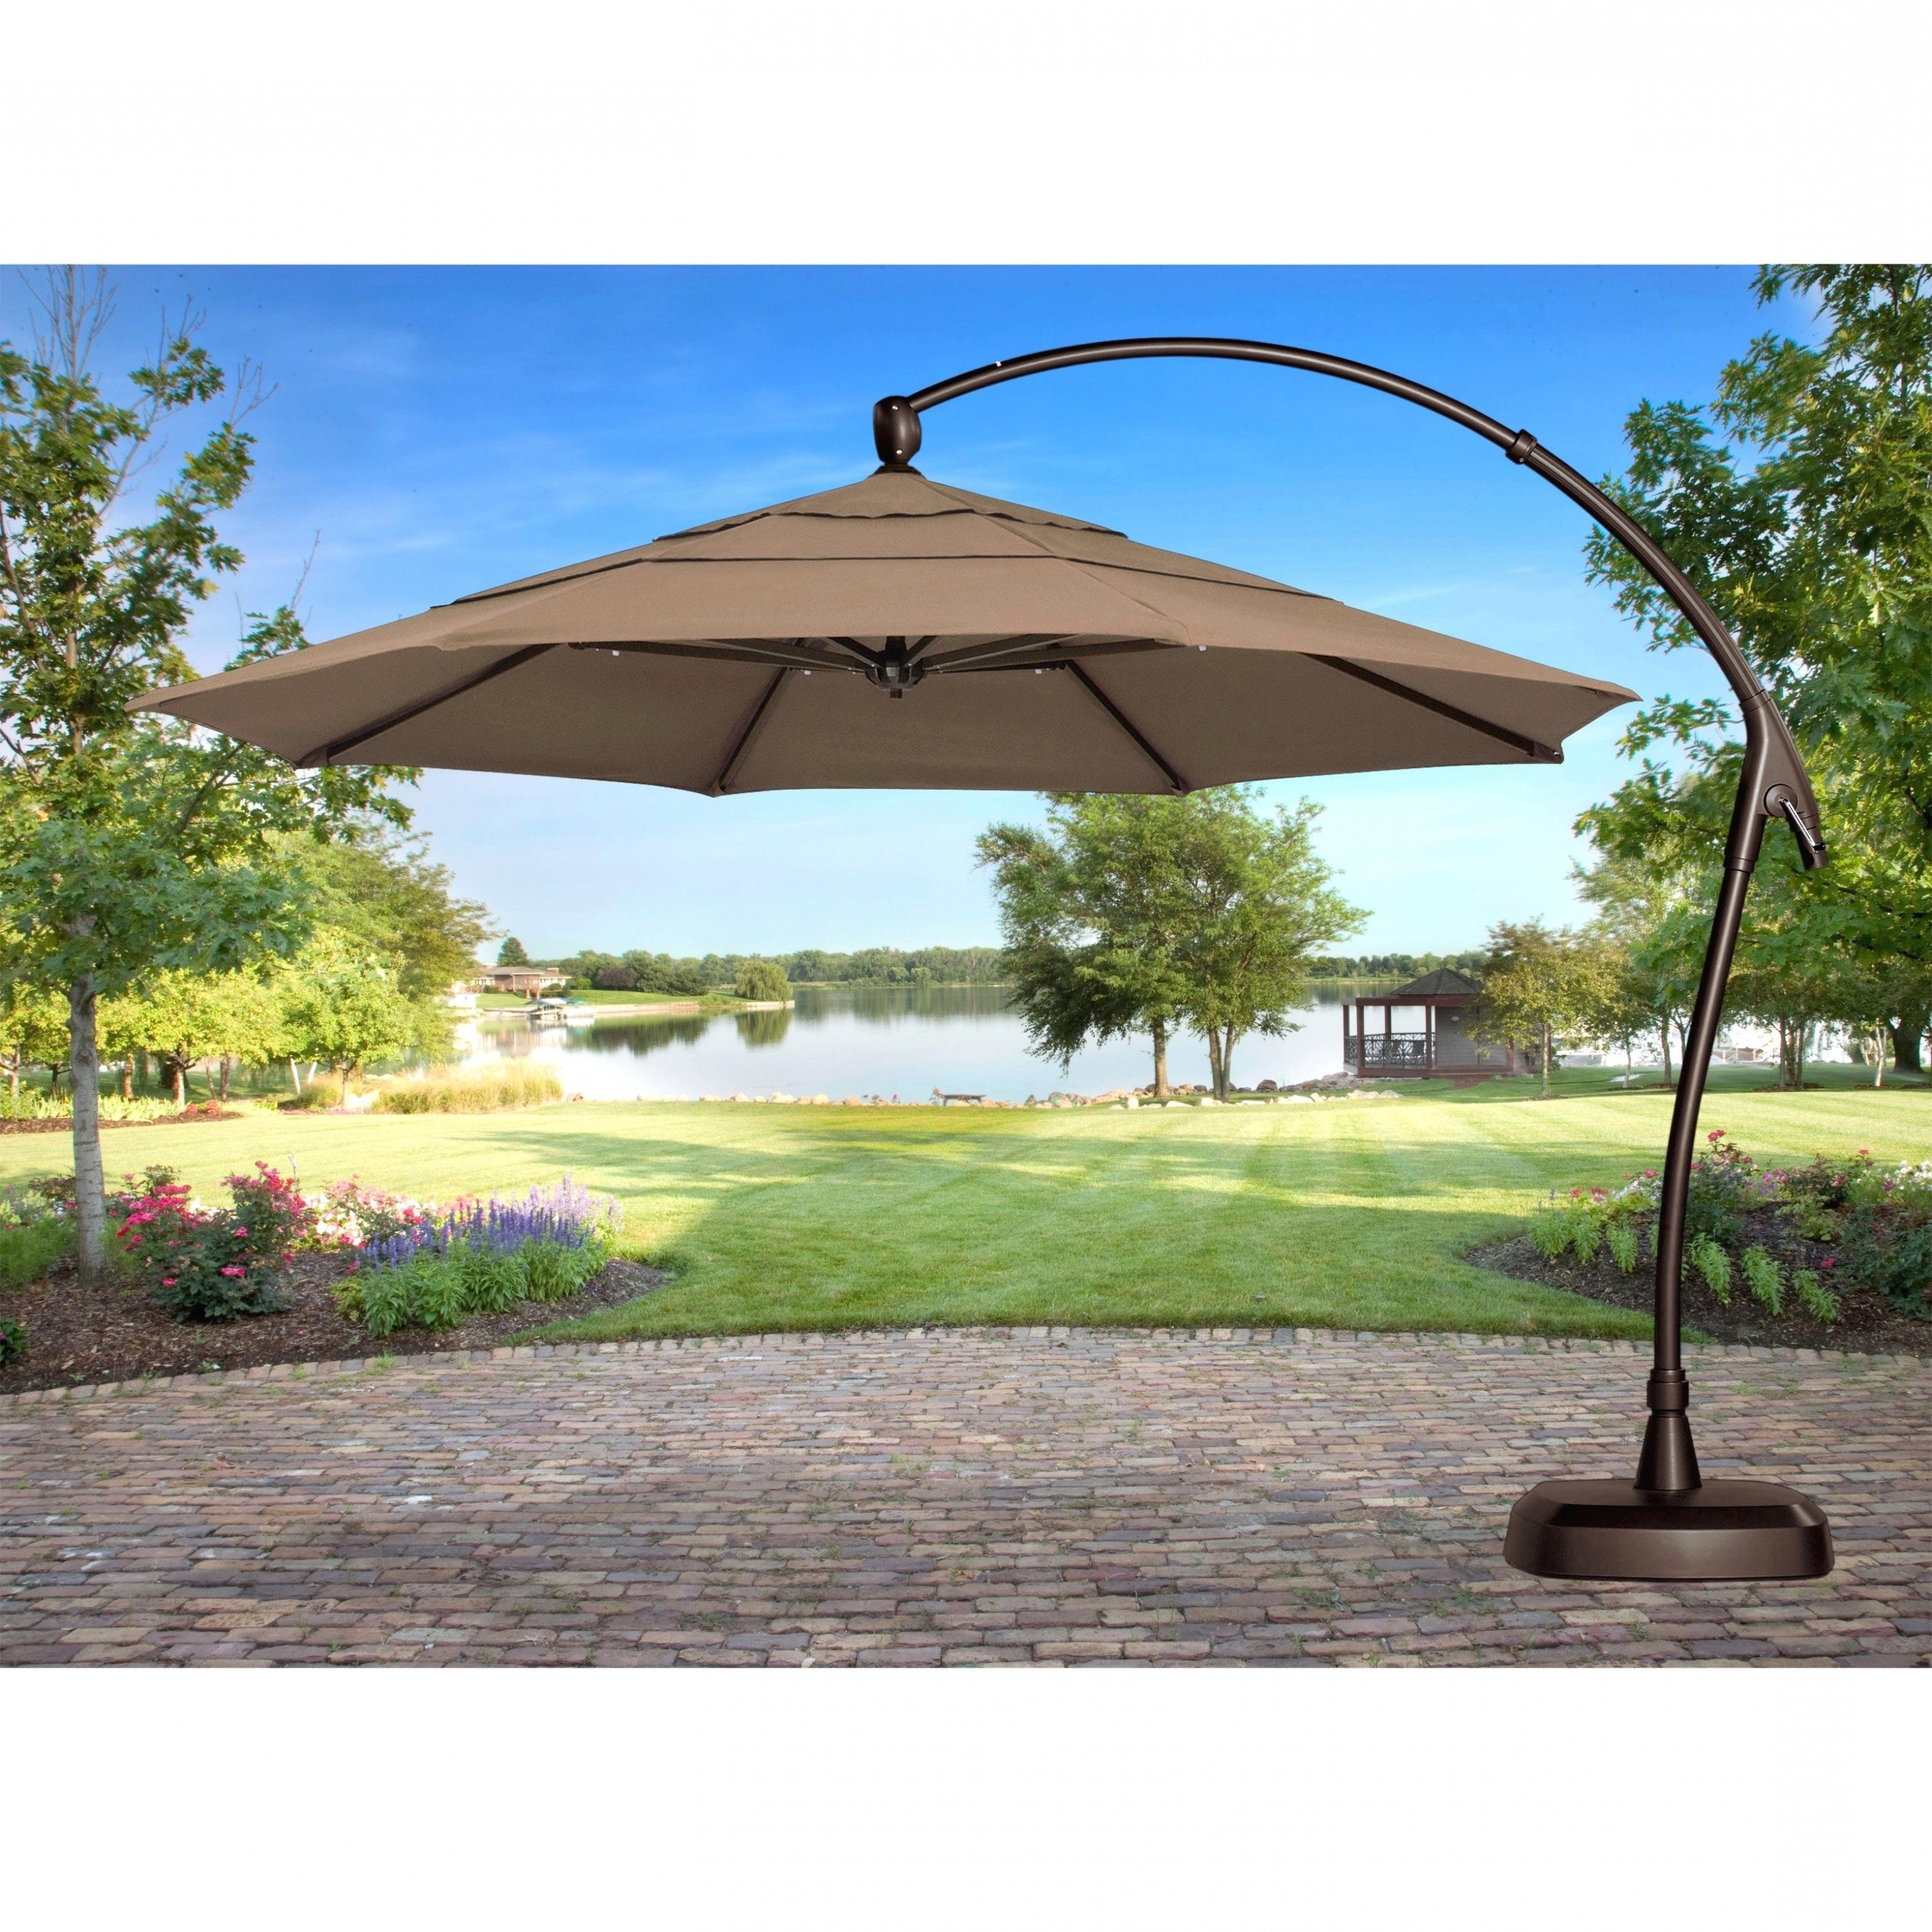 2018 Interior Decor: Luxuriant Cantilever Patio Umbrella Teak Chairs With Regard To Sears Patio Umbrellas (View 1 of 20)